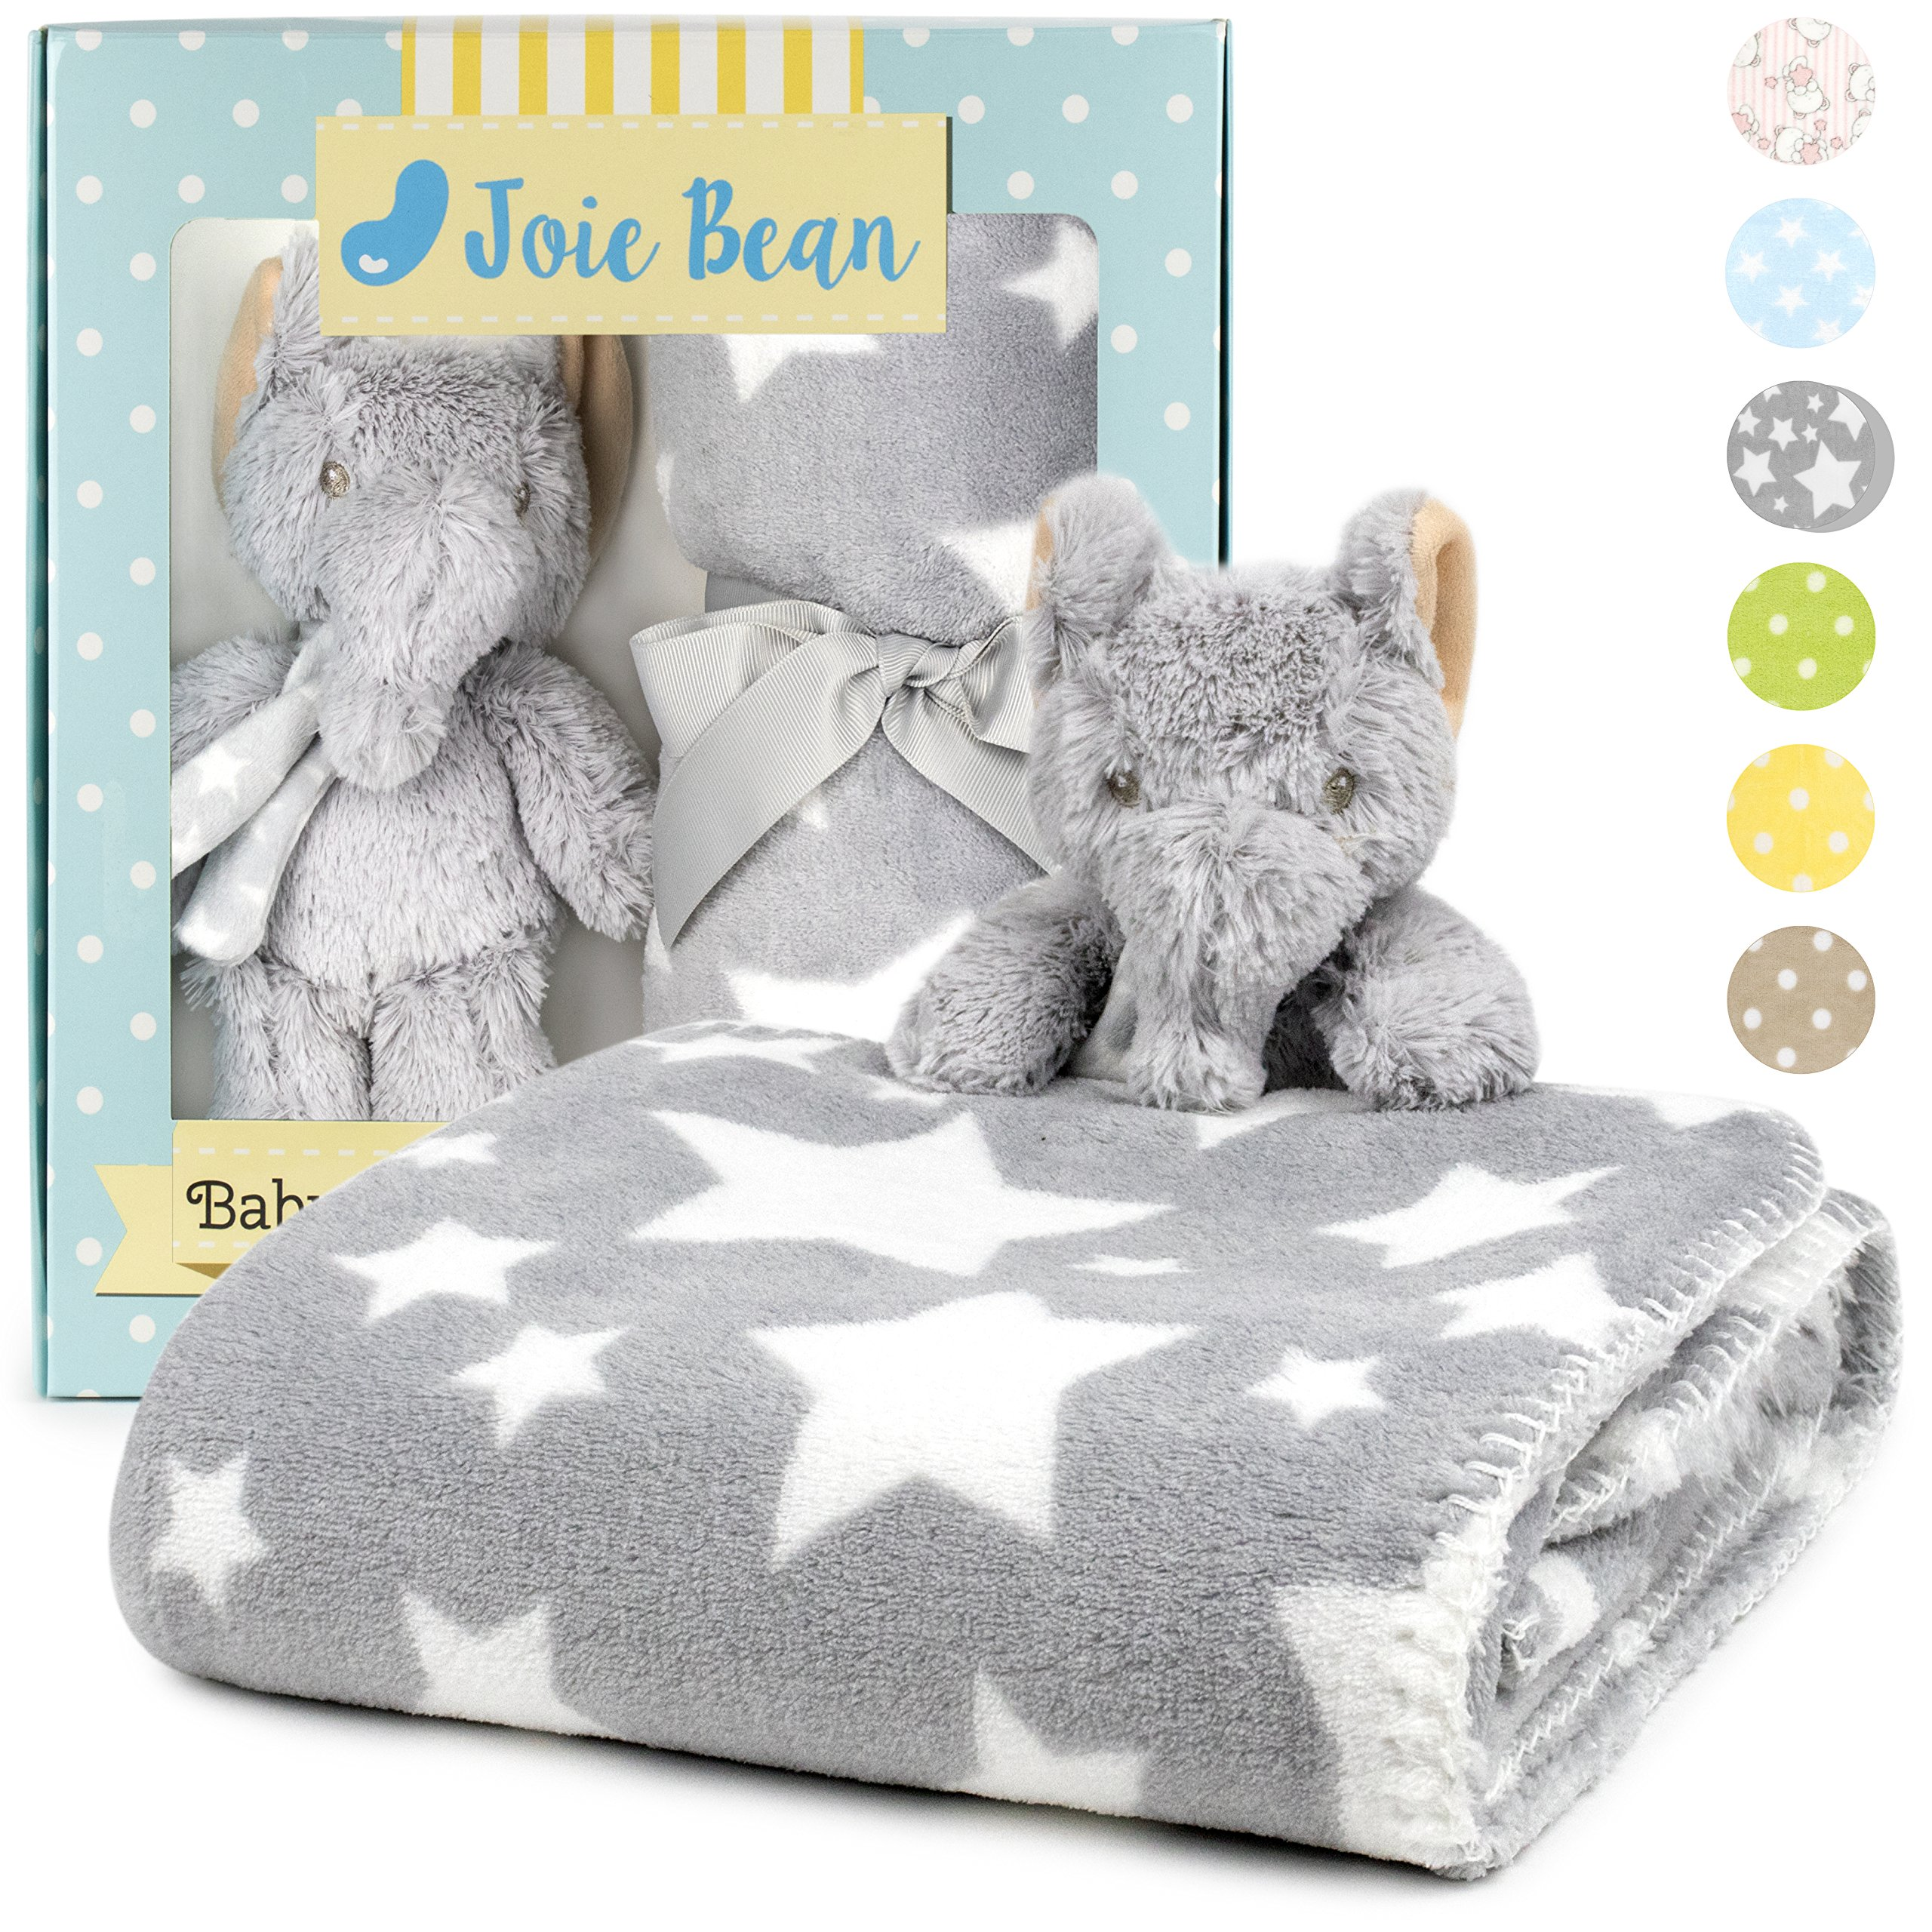 Premium Baby Blanket Set with Stuffed Animal Plush Toy | Soft Fleece Swaddle Blanket, Security Throw for Baby, Newborn, and Toddler | Nursery Bedding and Baby Shower Gift (Grey - Elephant)